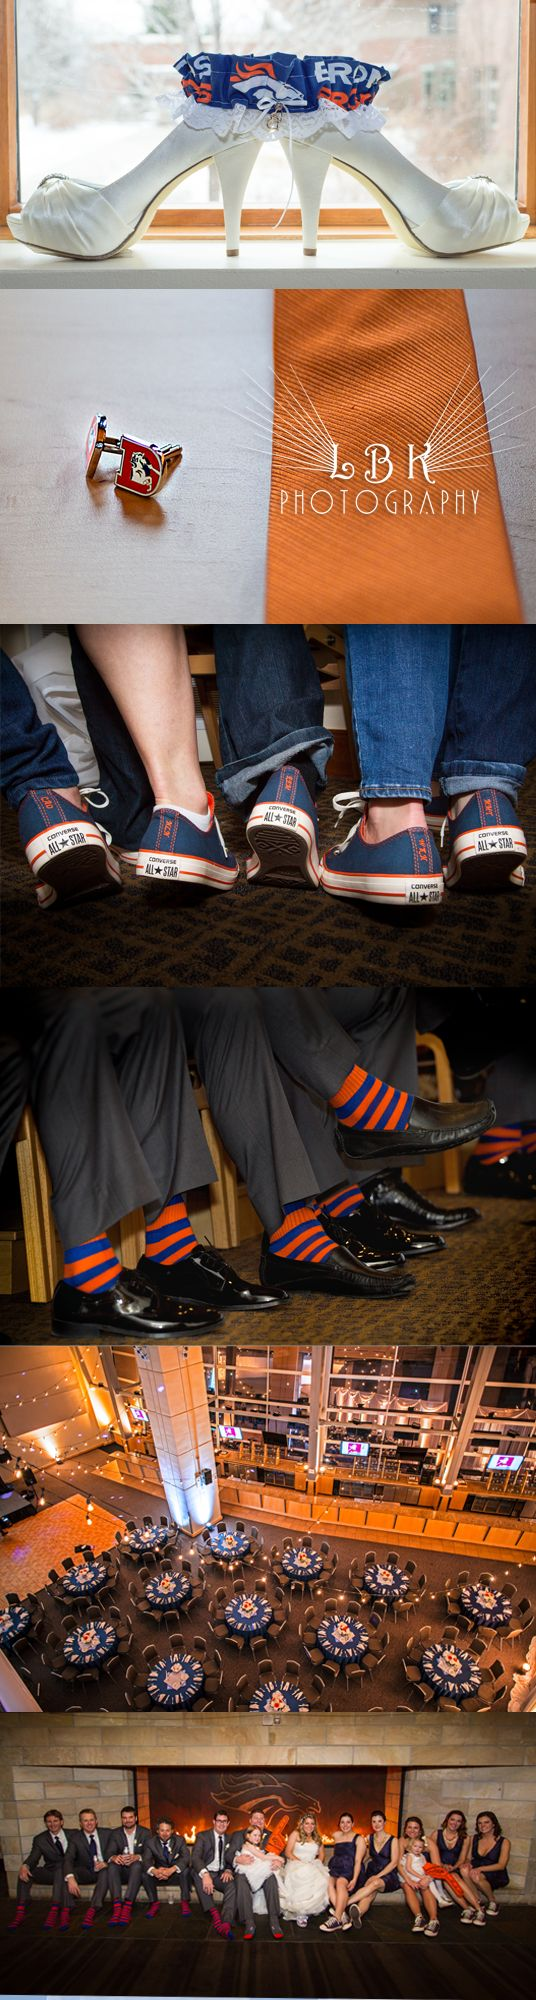 LBK Photography  Sports Authority Field Wedding.  Denver Broncos themed wedding, Broncos Garter, Broncos cufflinks, Broncos Converse, Broncos socks, at the Broncos Stadium. Football lovers wedding.  Colorado Wedding Photography